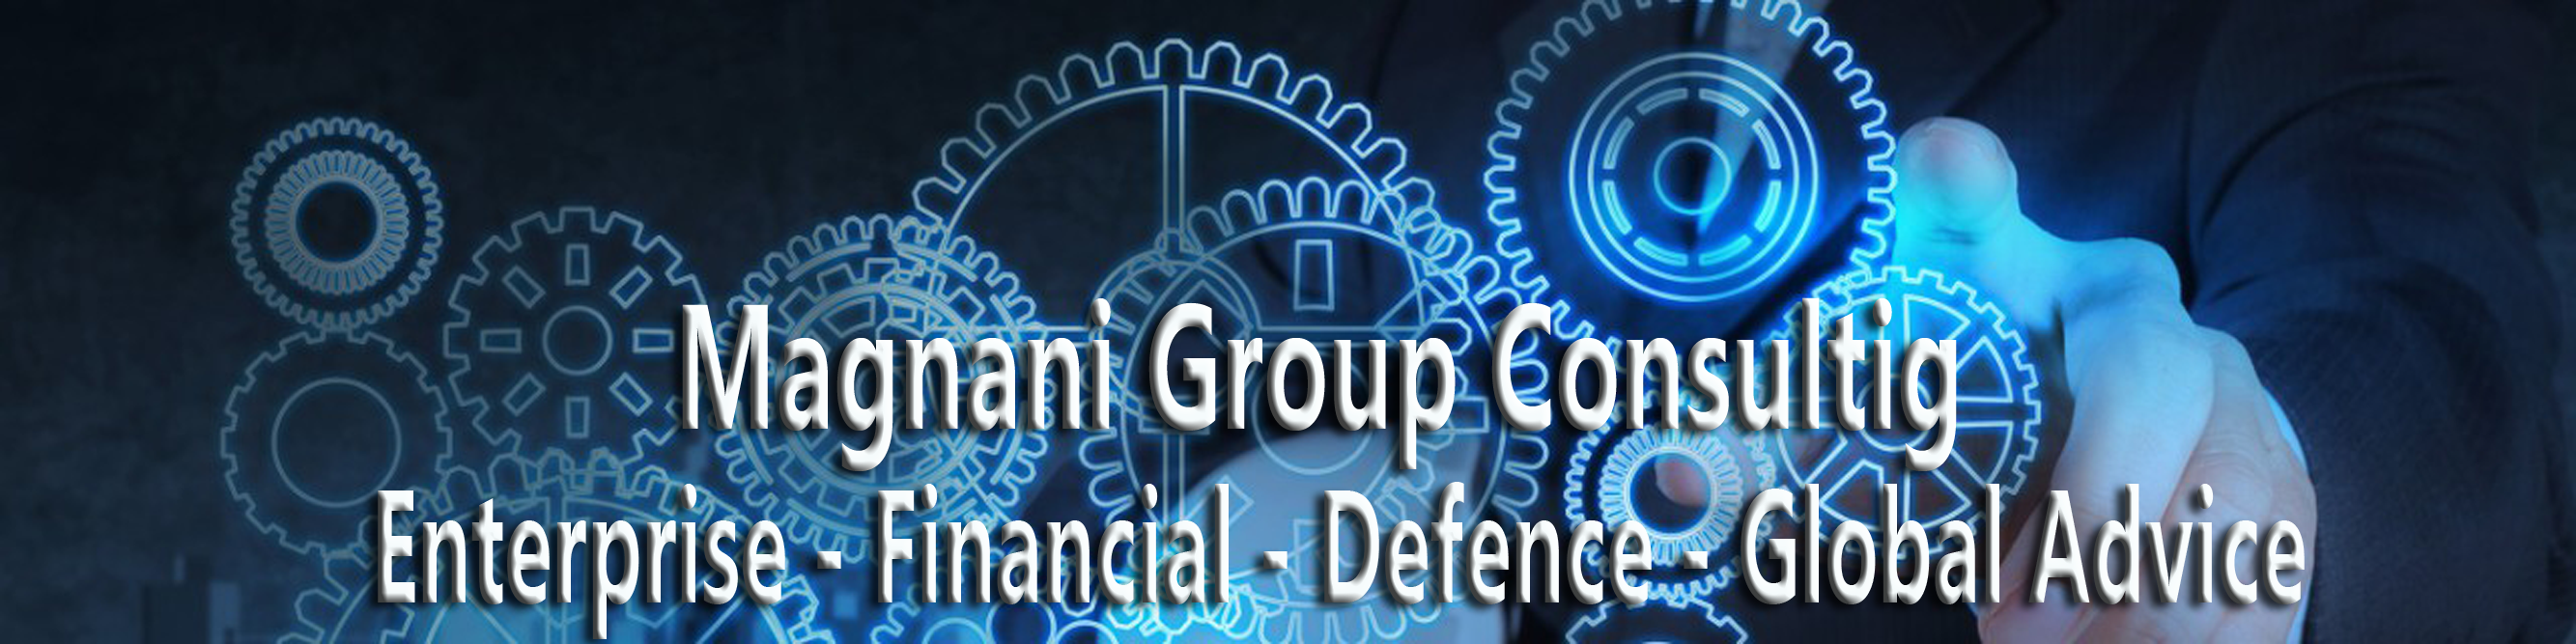 magnani-group-consulting